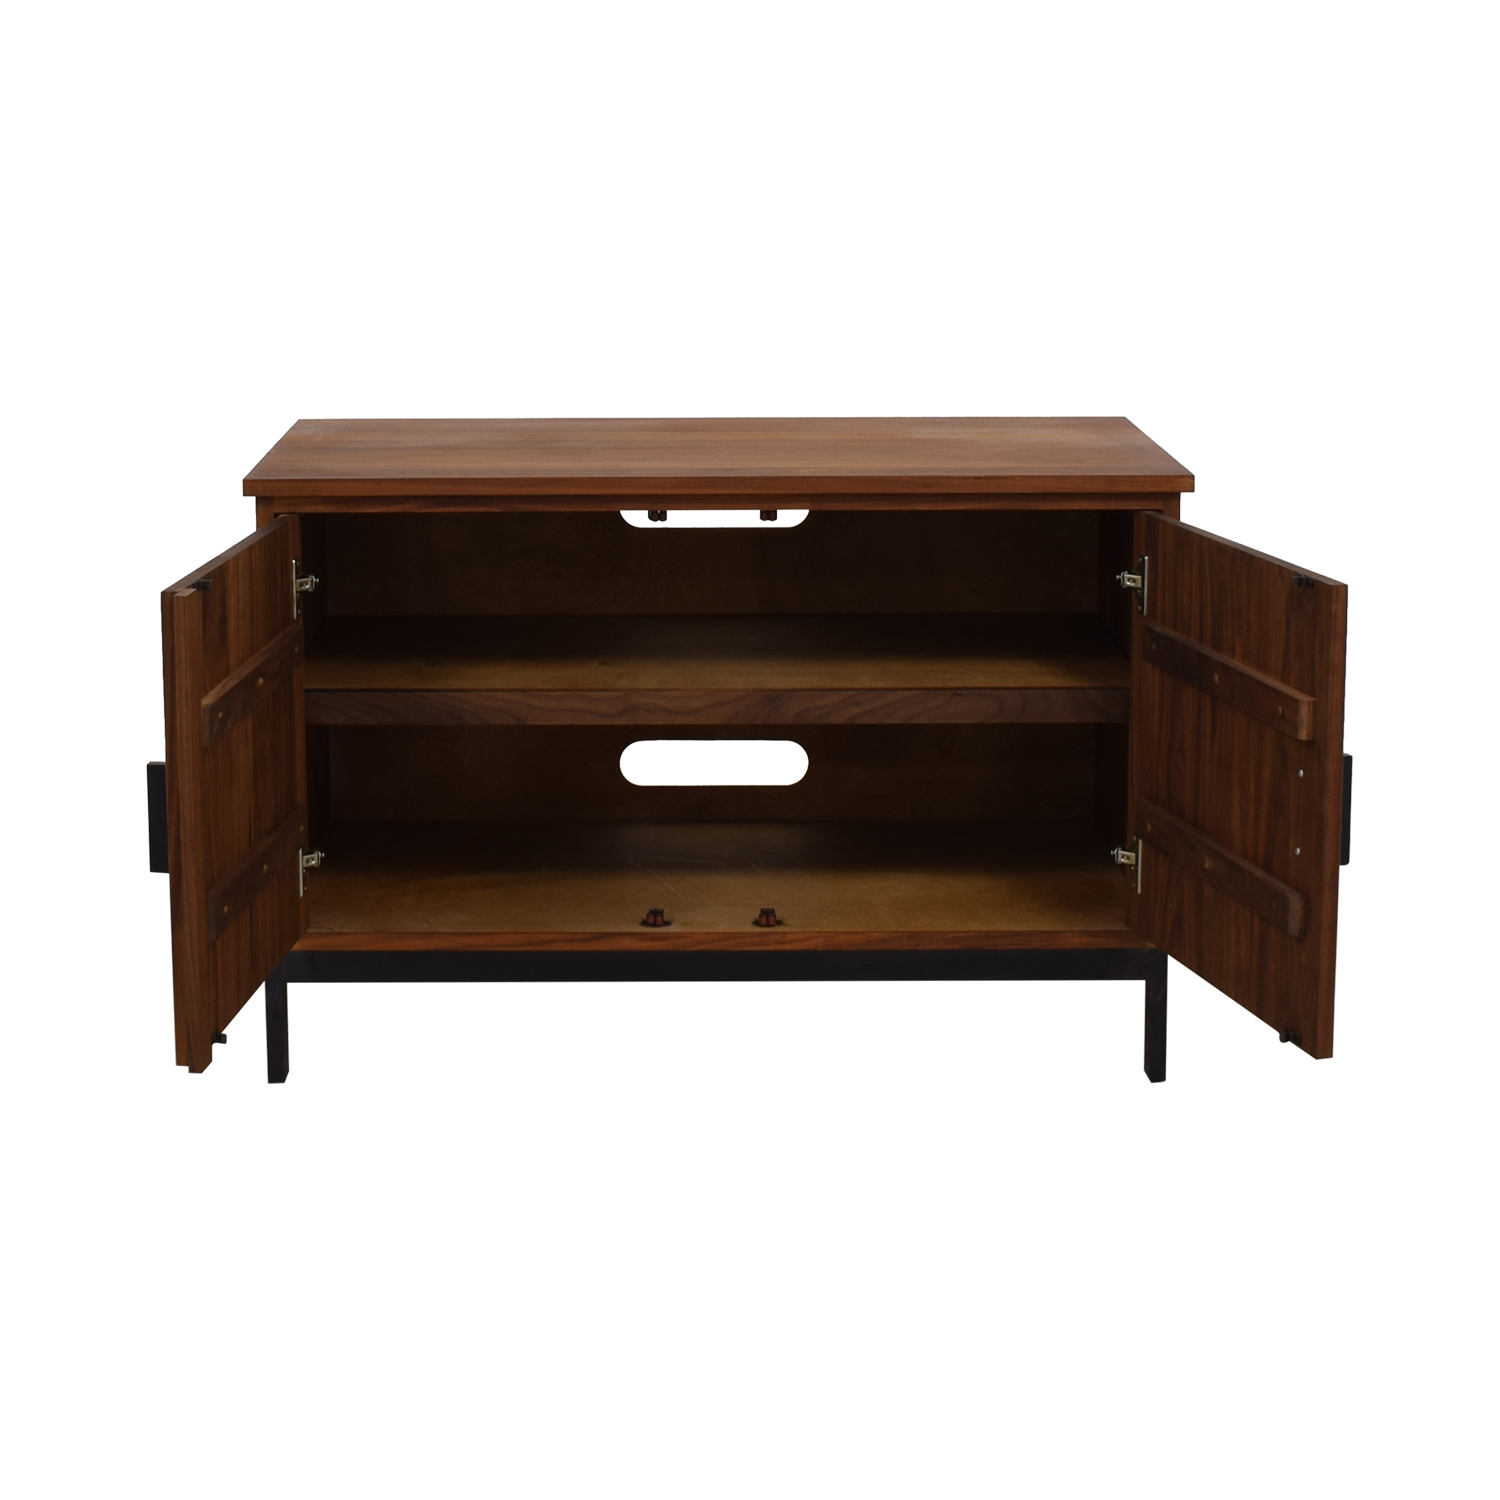 Room & Board Wood Sideboard or Media Console sale